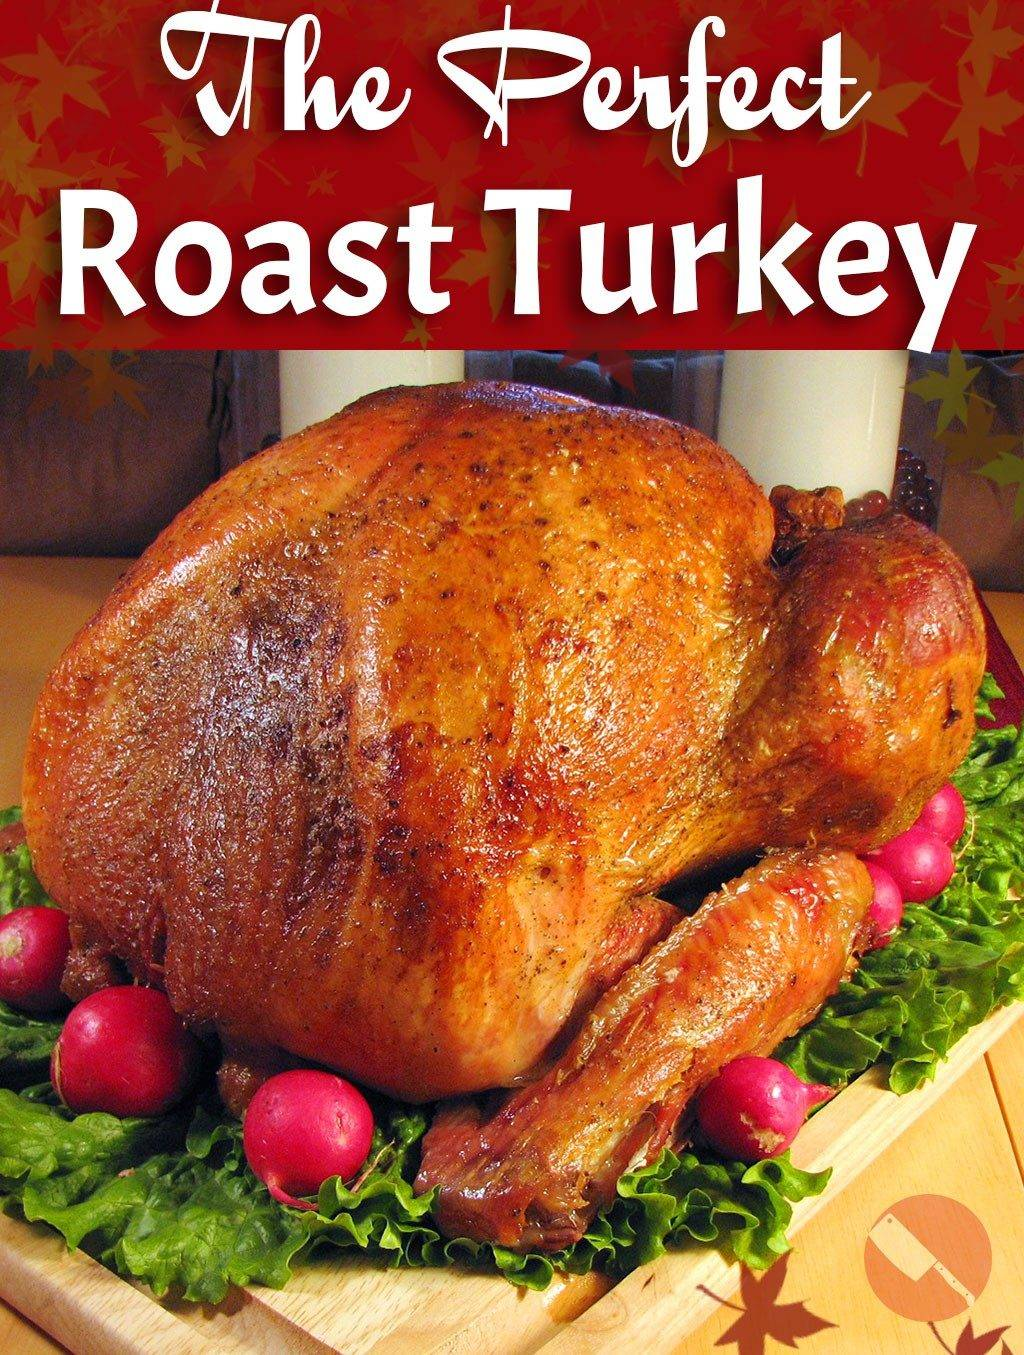 The most succulent, juicy, and amazingly flavored roast turkey you will ever make. I Promise.